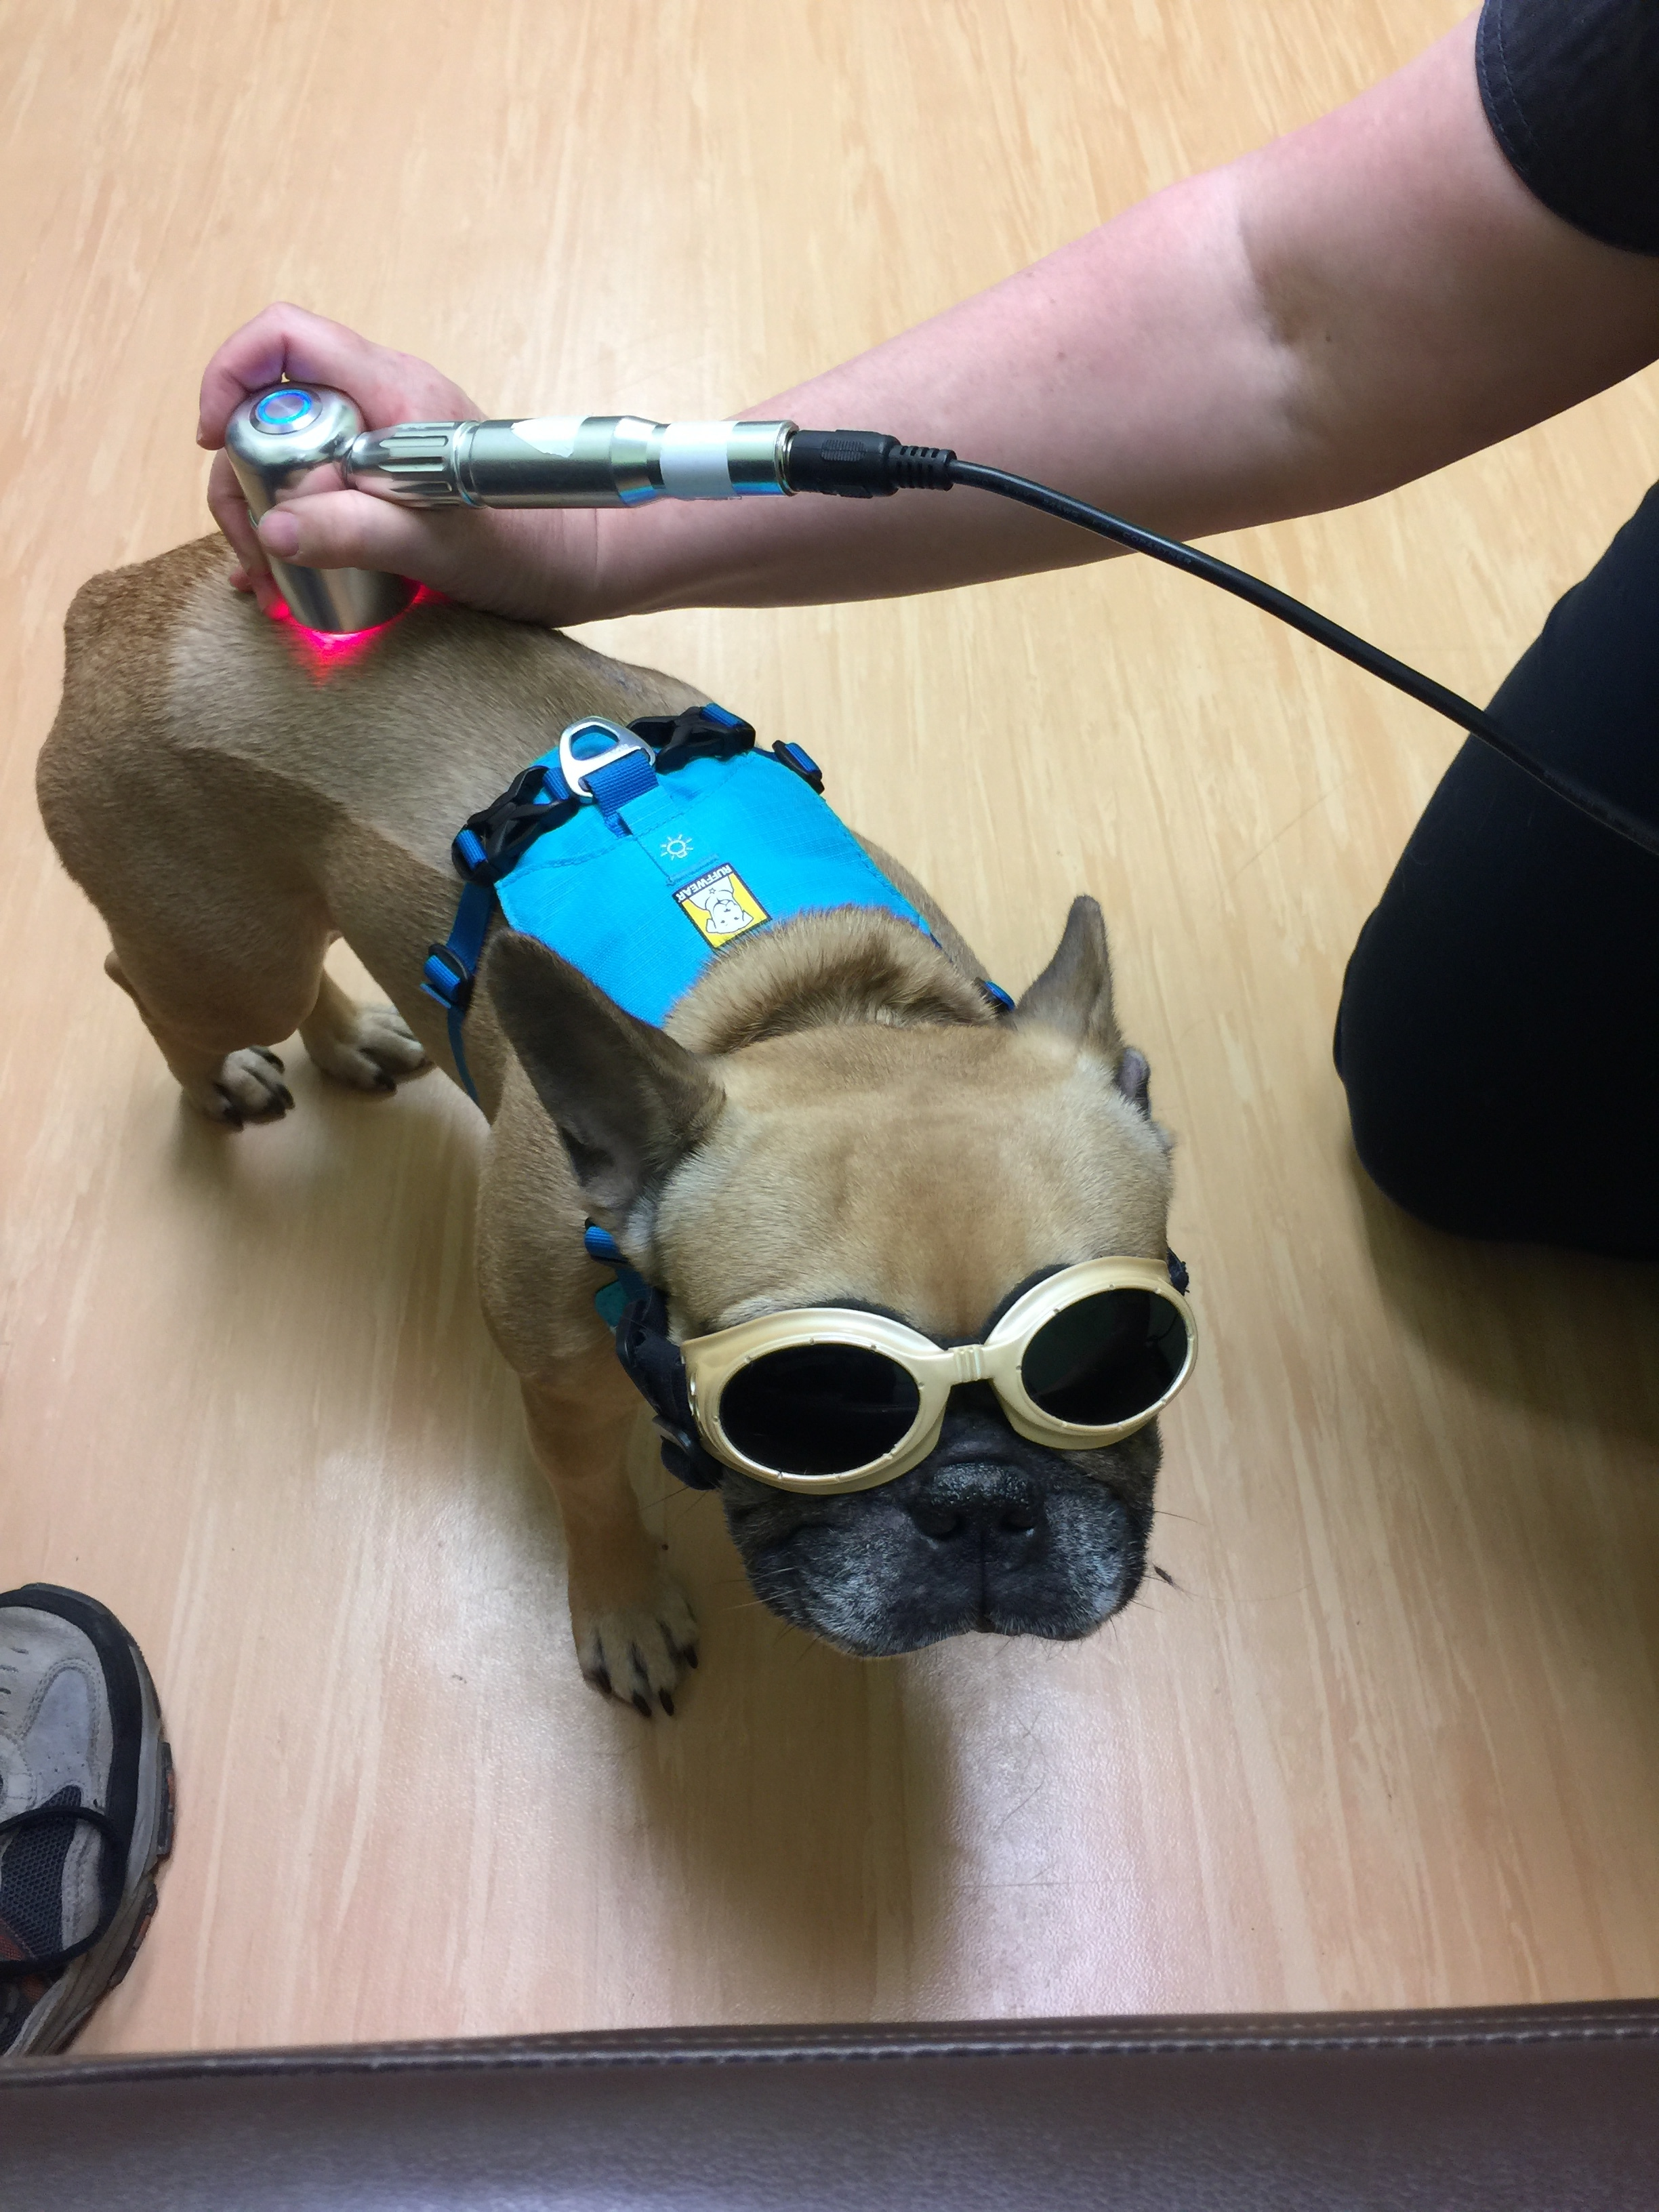 ( * Historically, Mirabelle really dislikes wearing things - ESPECIALLY over her eyes! But she loves the robotlasers and stands patiently without trying to take them off for the whole treatment! - Mum)